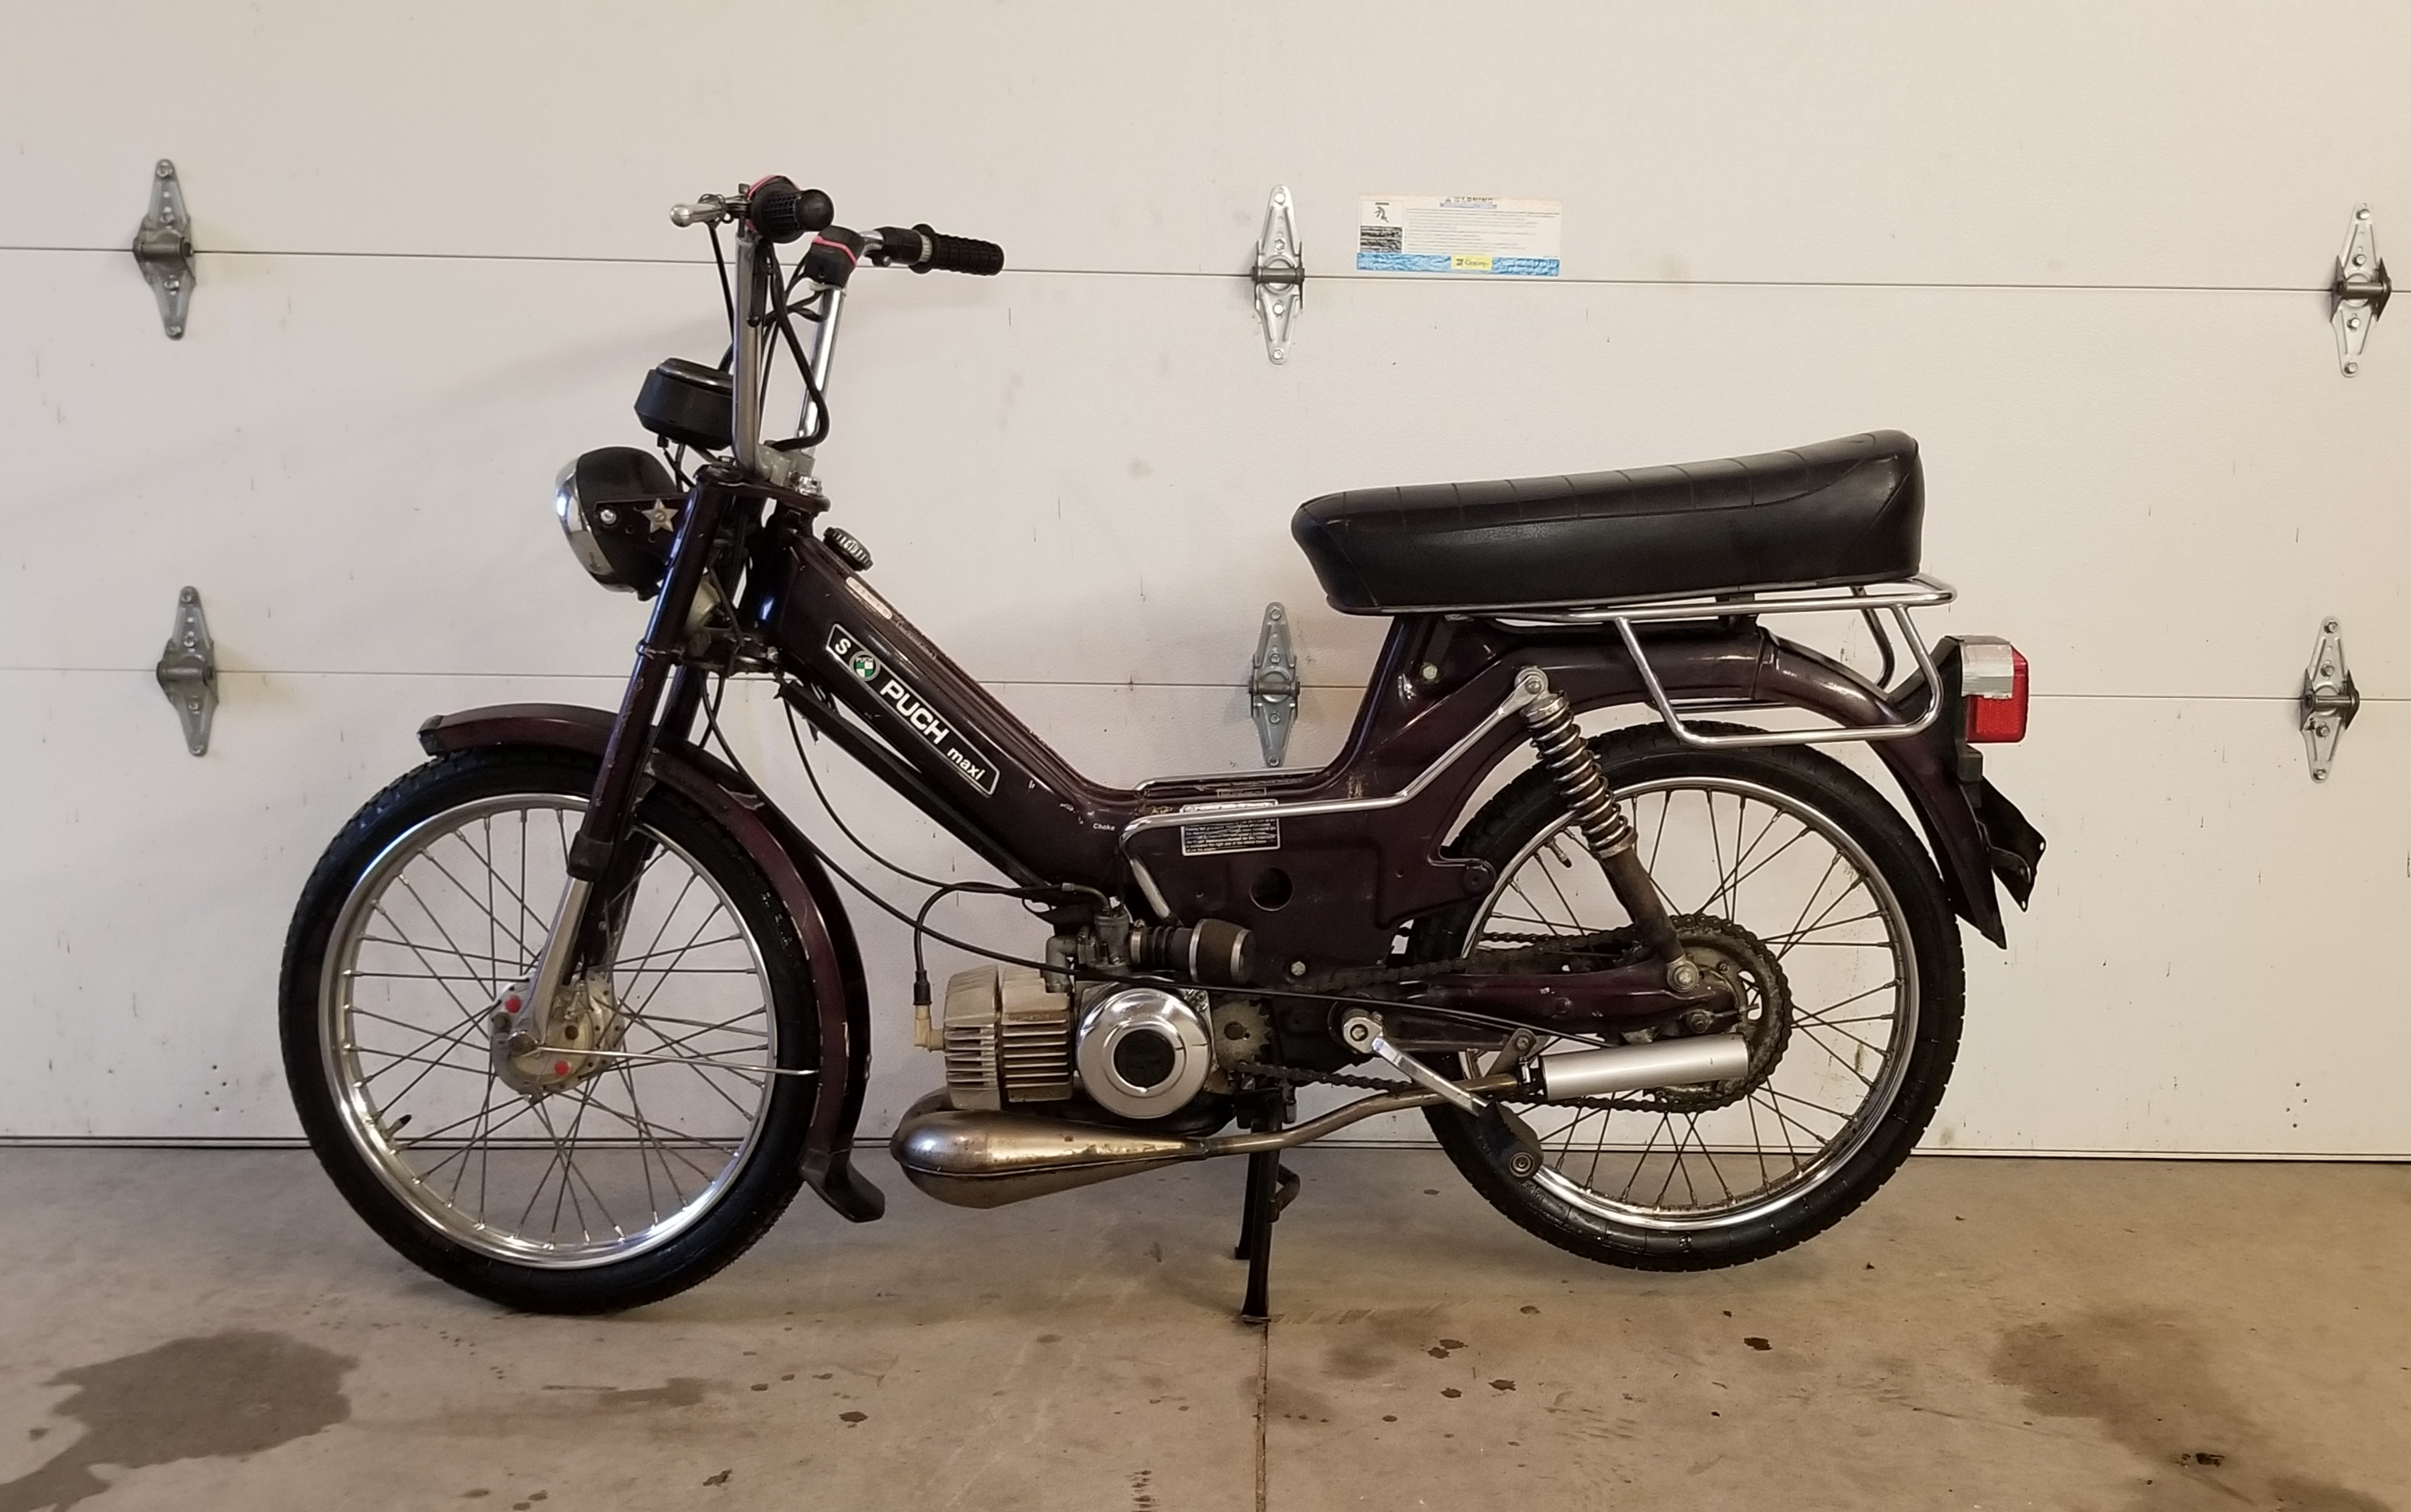 For sale: 1984 puch maxi $325 — Moped Army